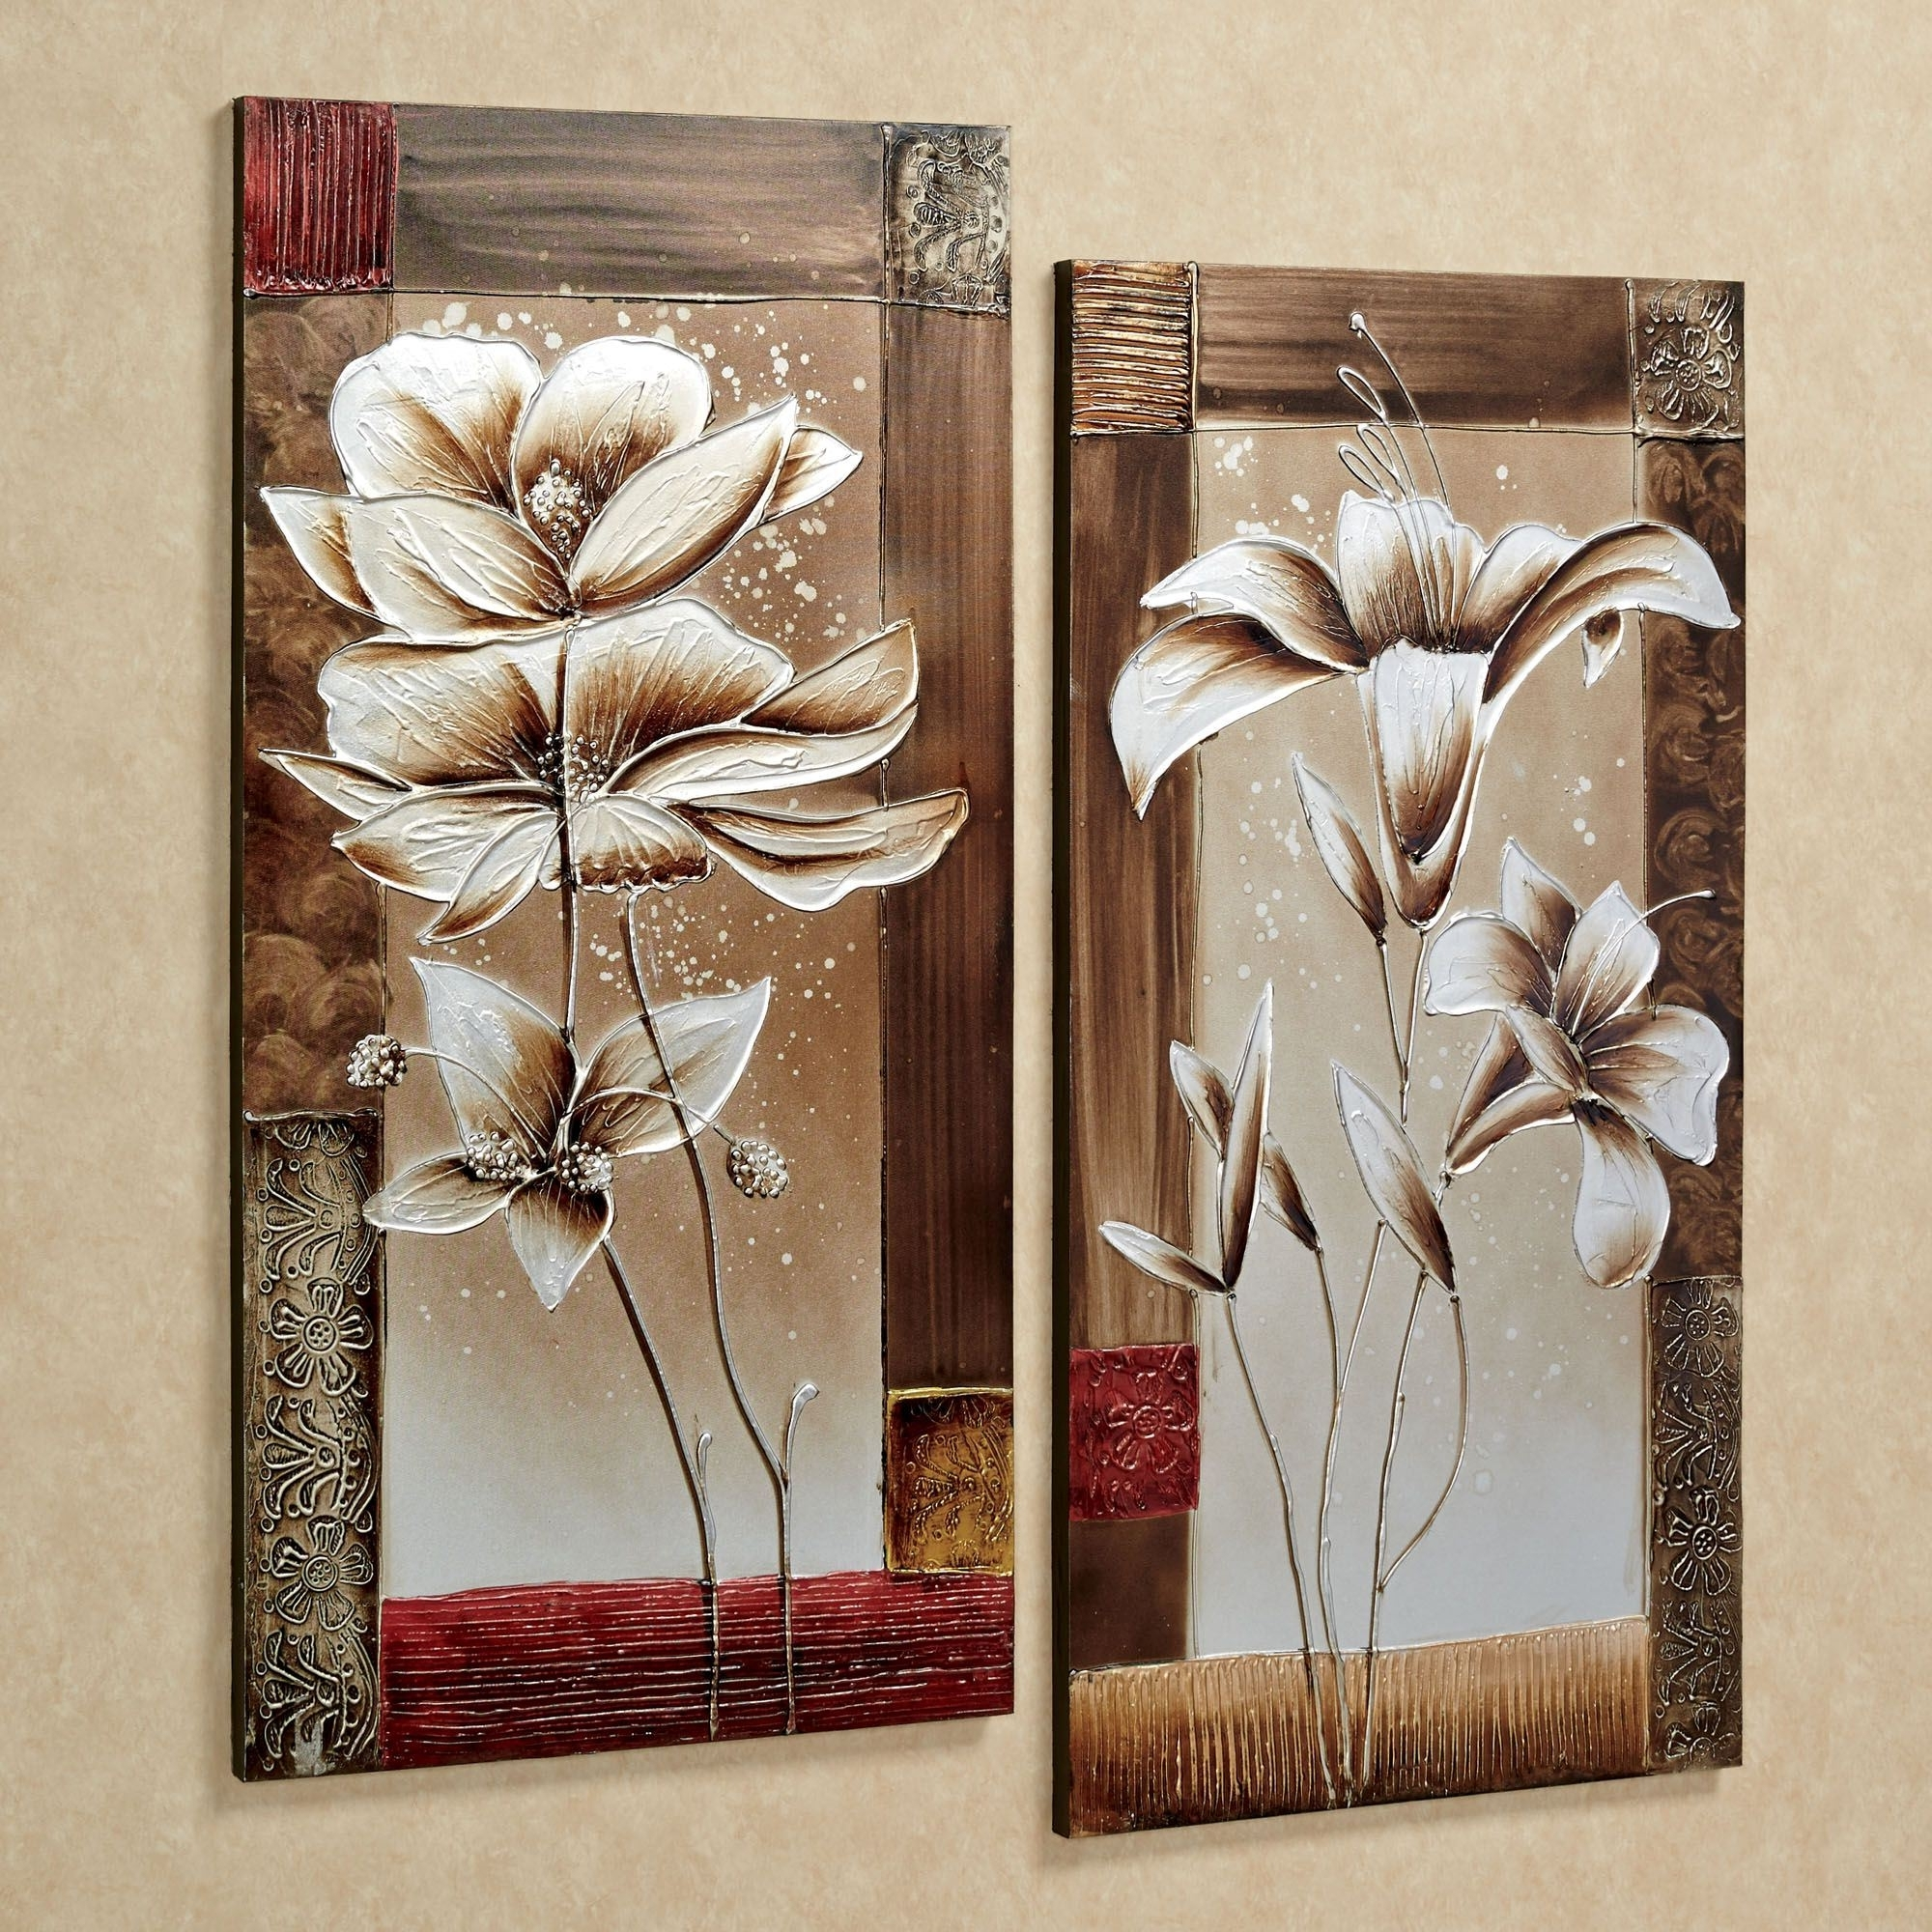 Most Recent Petals Of Spring Floral Canvas Wall Art Set With Regard To Wall Art Canvas (View 4 of 15)